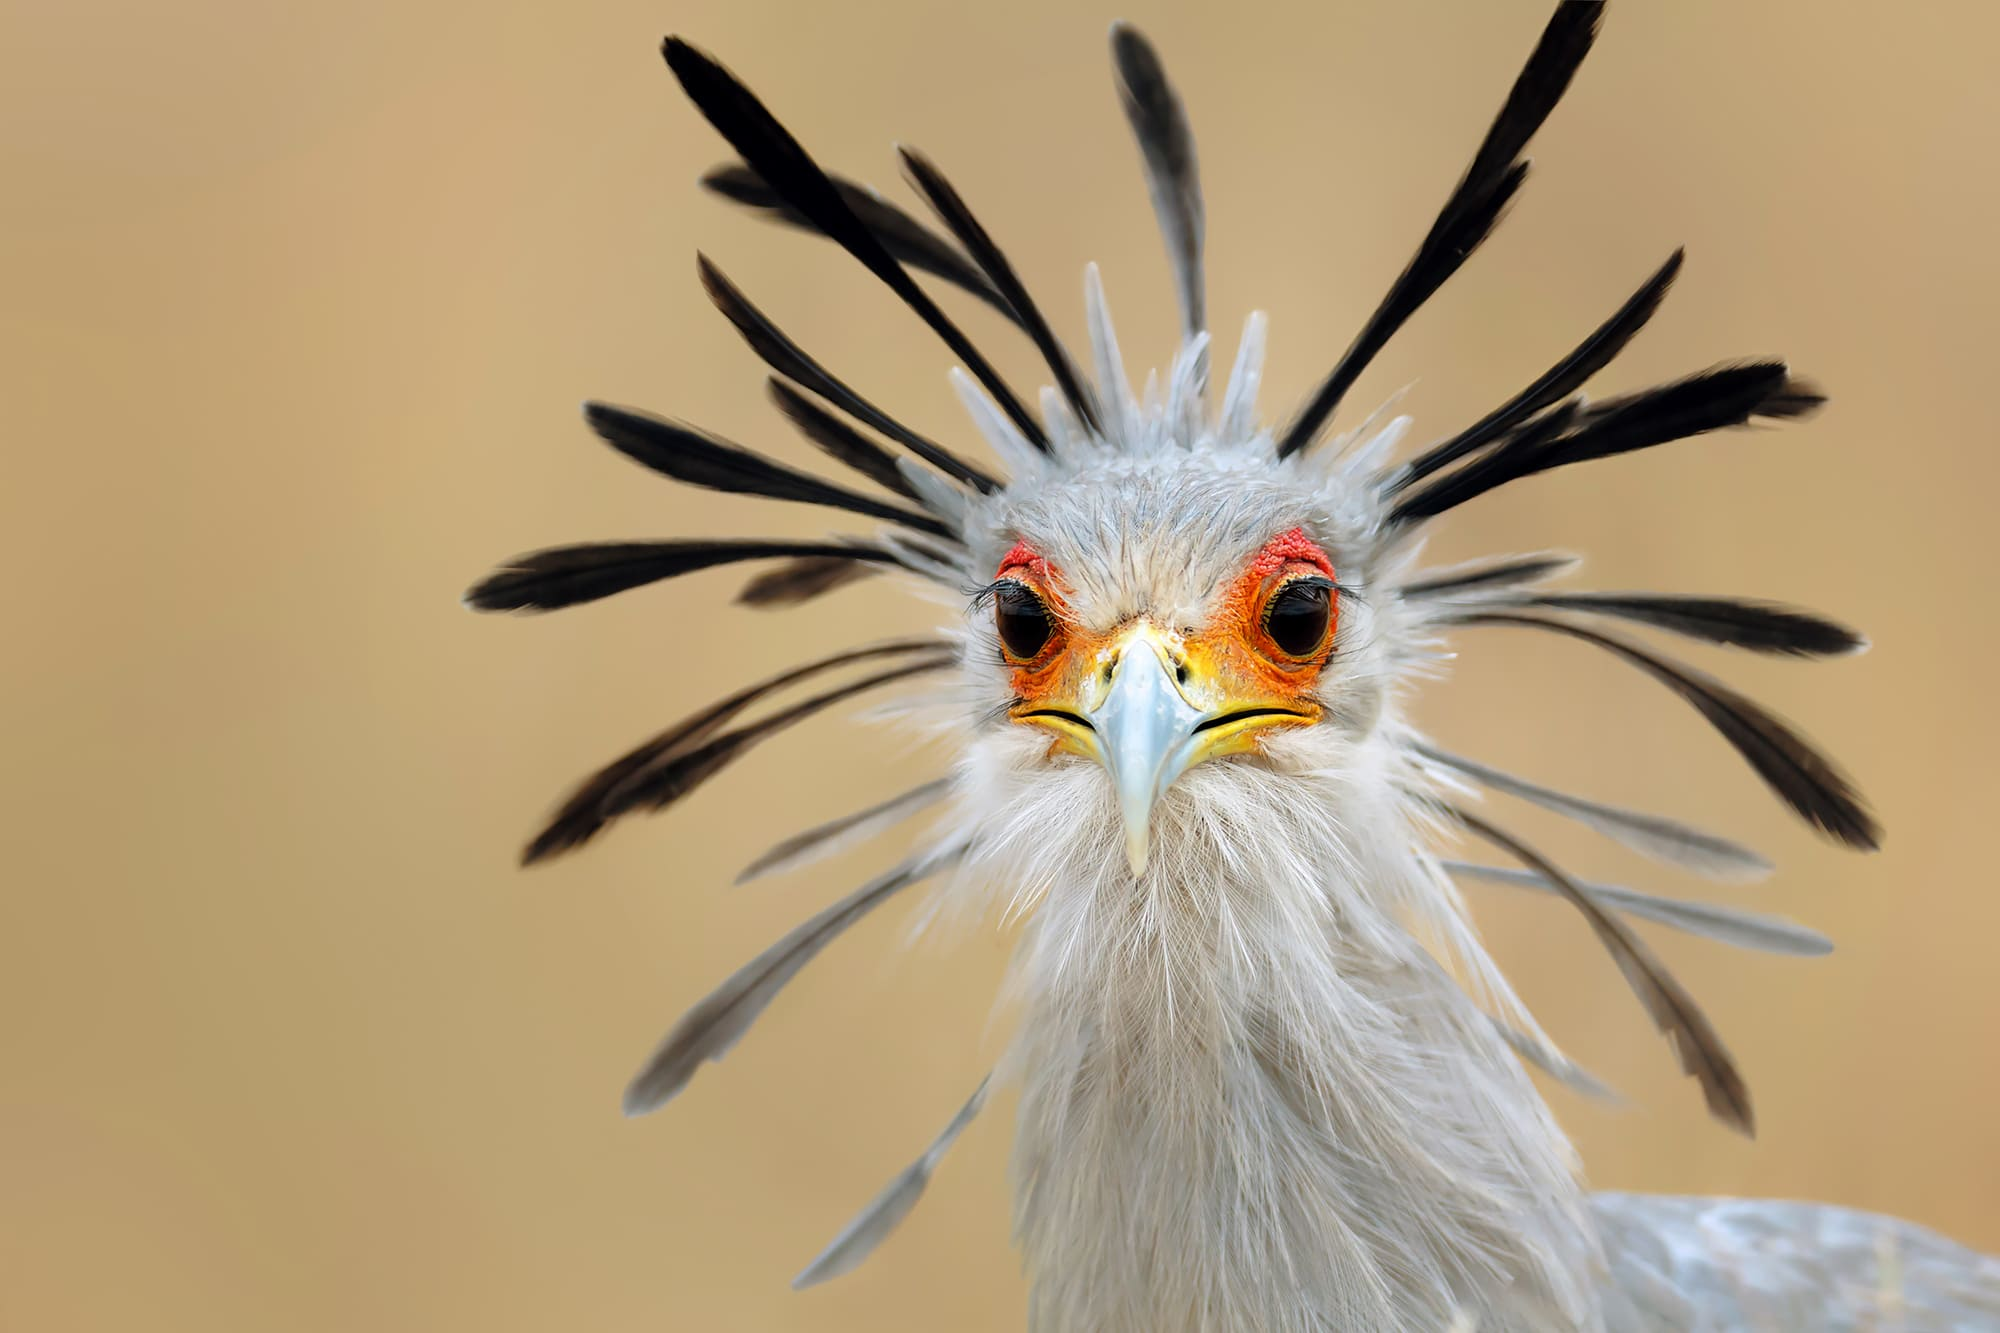 The head of a Secretarybird.